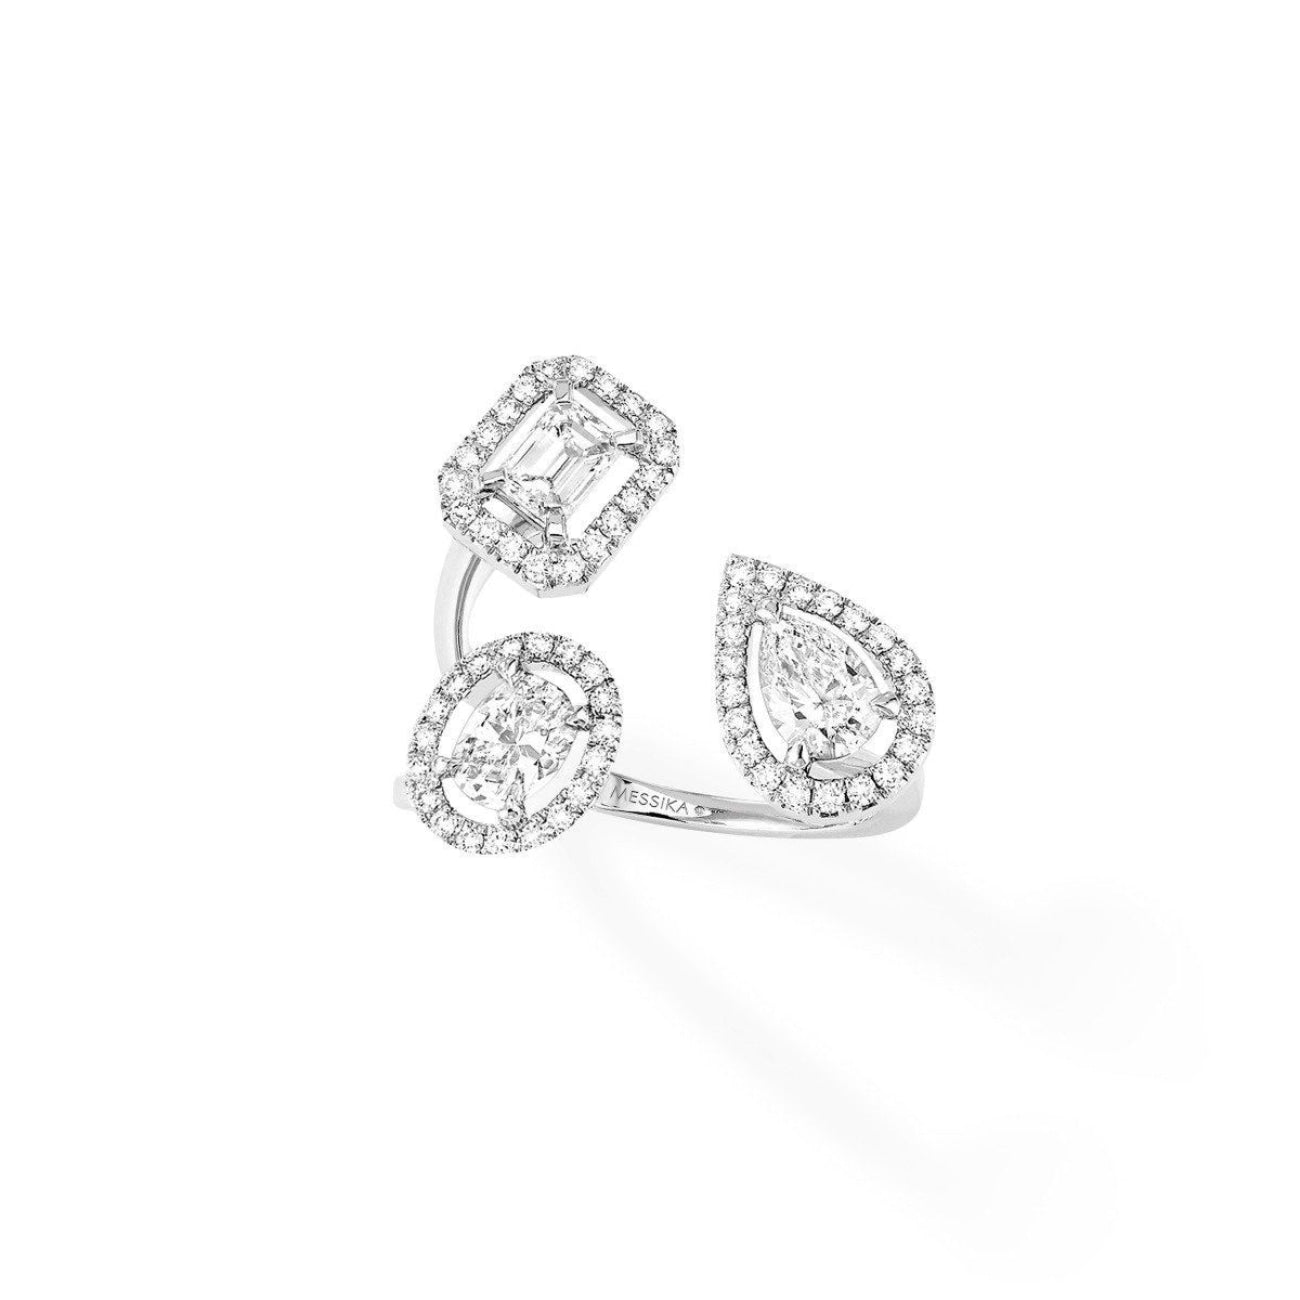 Messika Jewelry - My Twin Trilogy 50ct x3 RING - WHITE GOLD | Manfredi Jewels